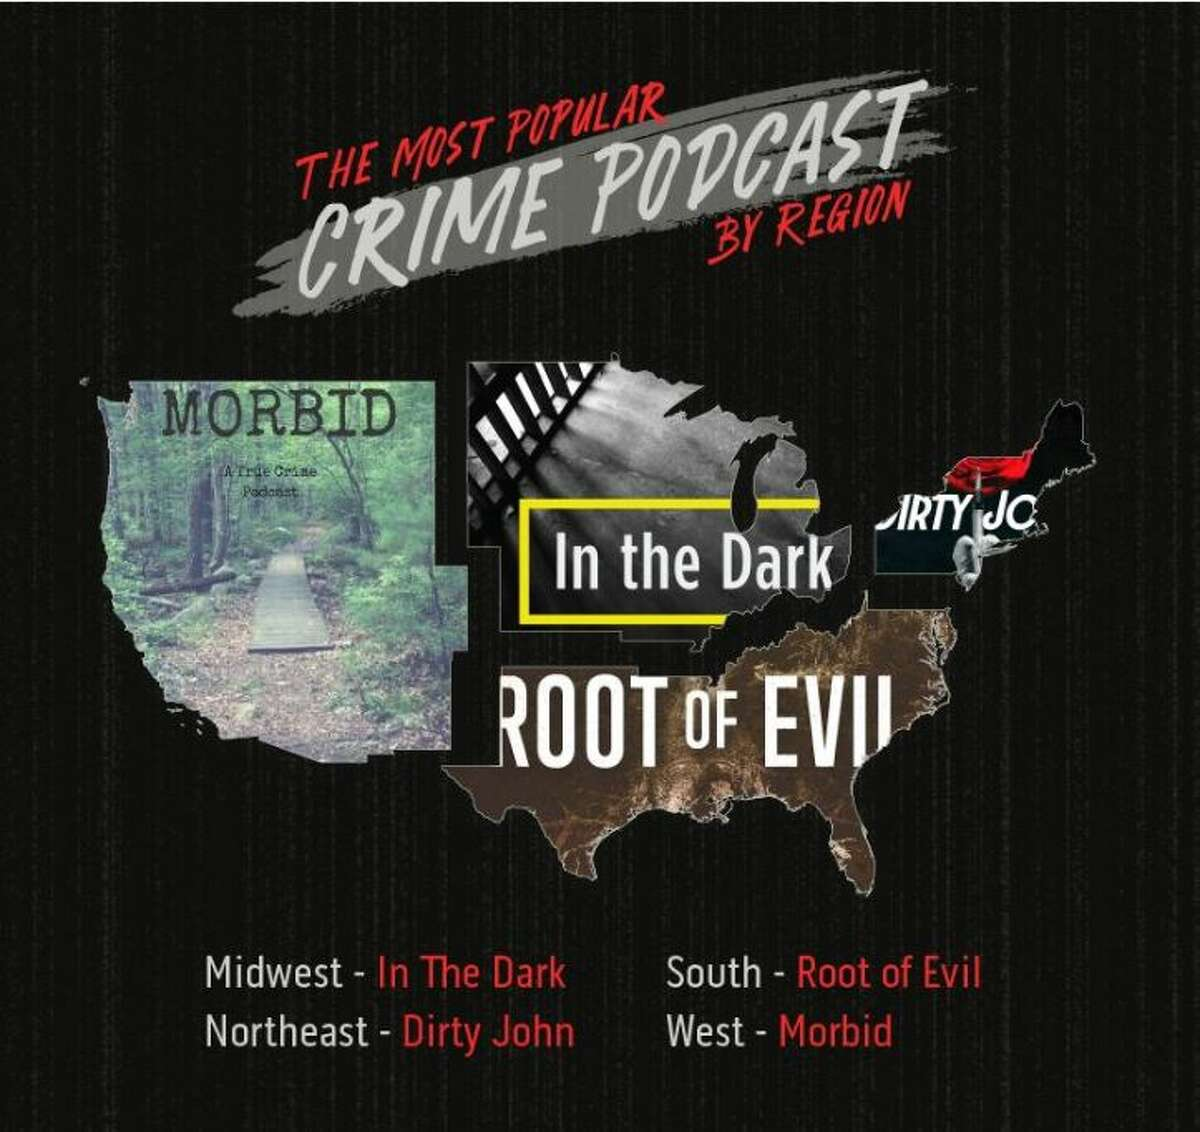 The most popular crime podcasts by region. Midwest: In The Dark Northeast: Dirty John South: Root of Evil West: Morbid